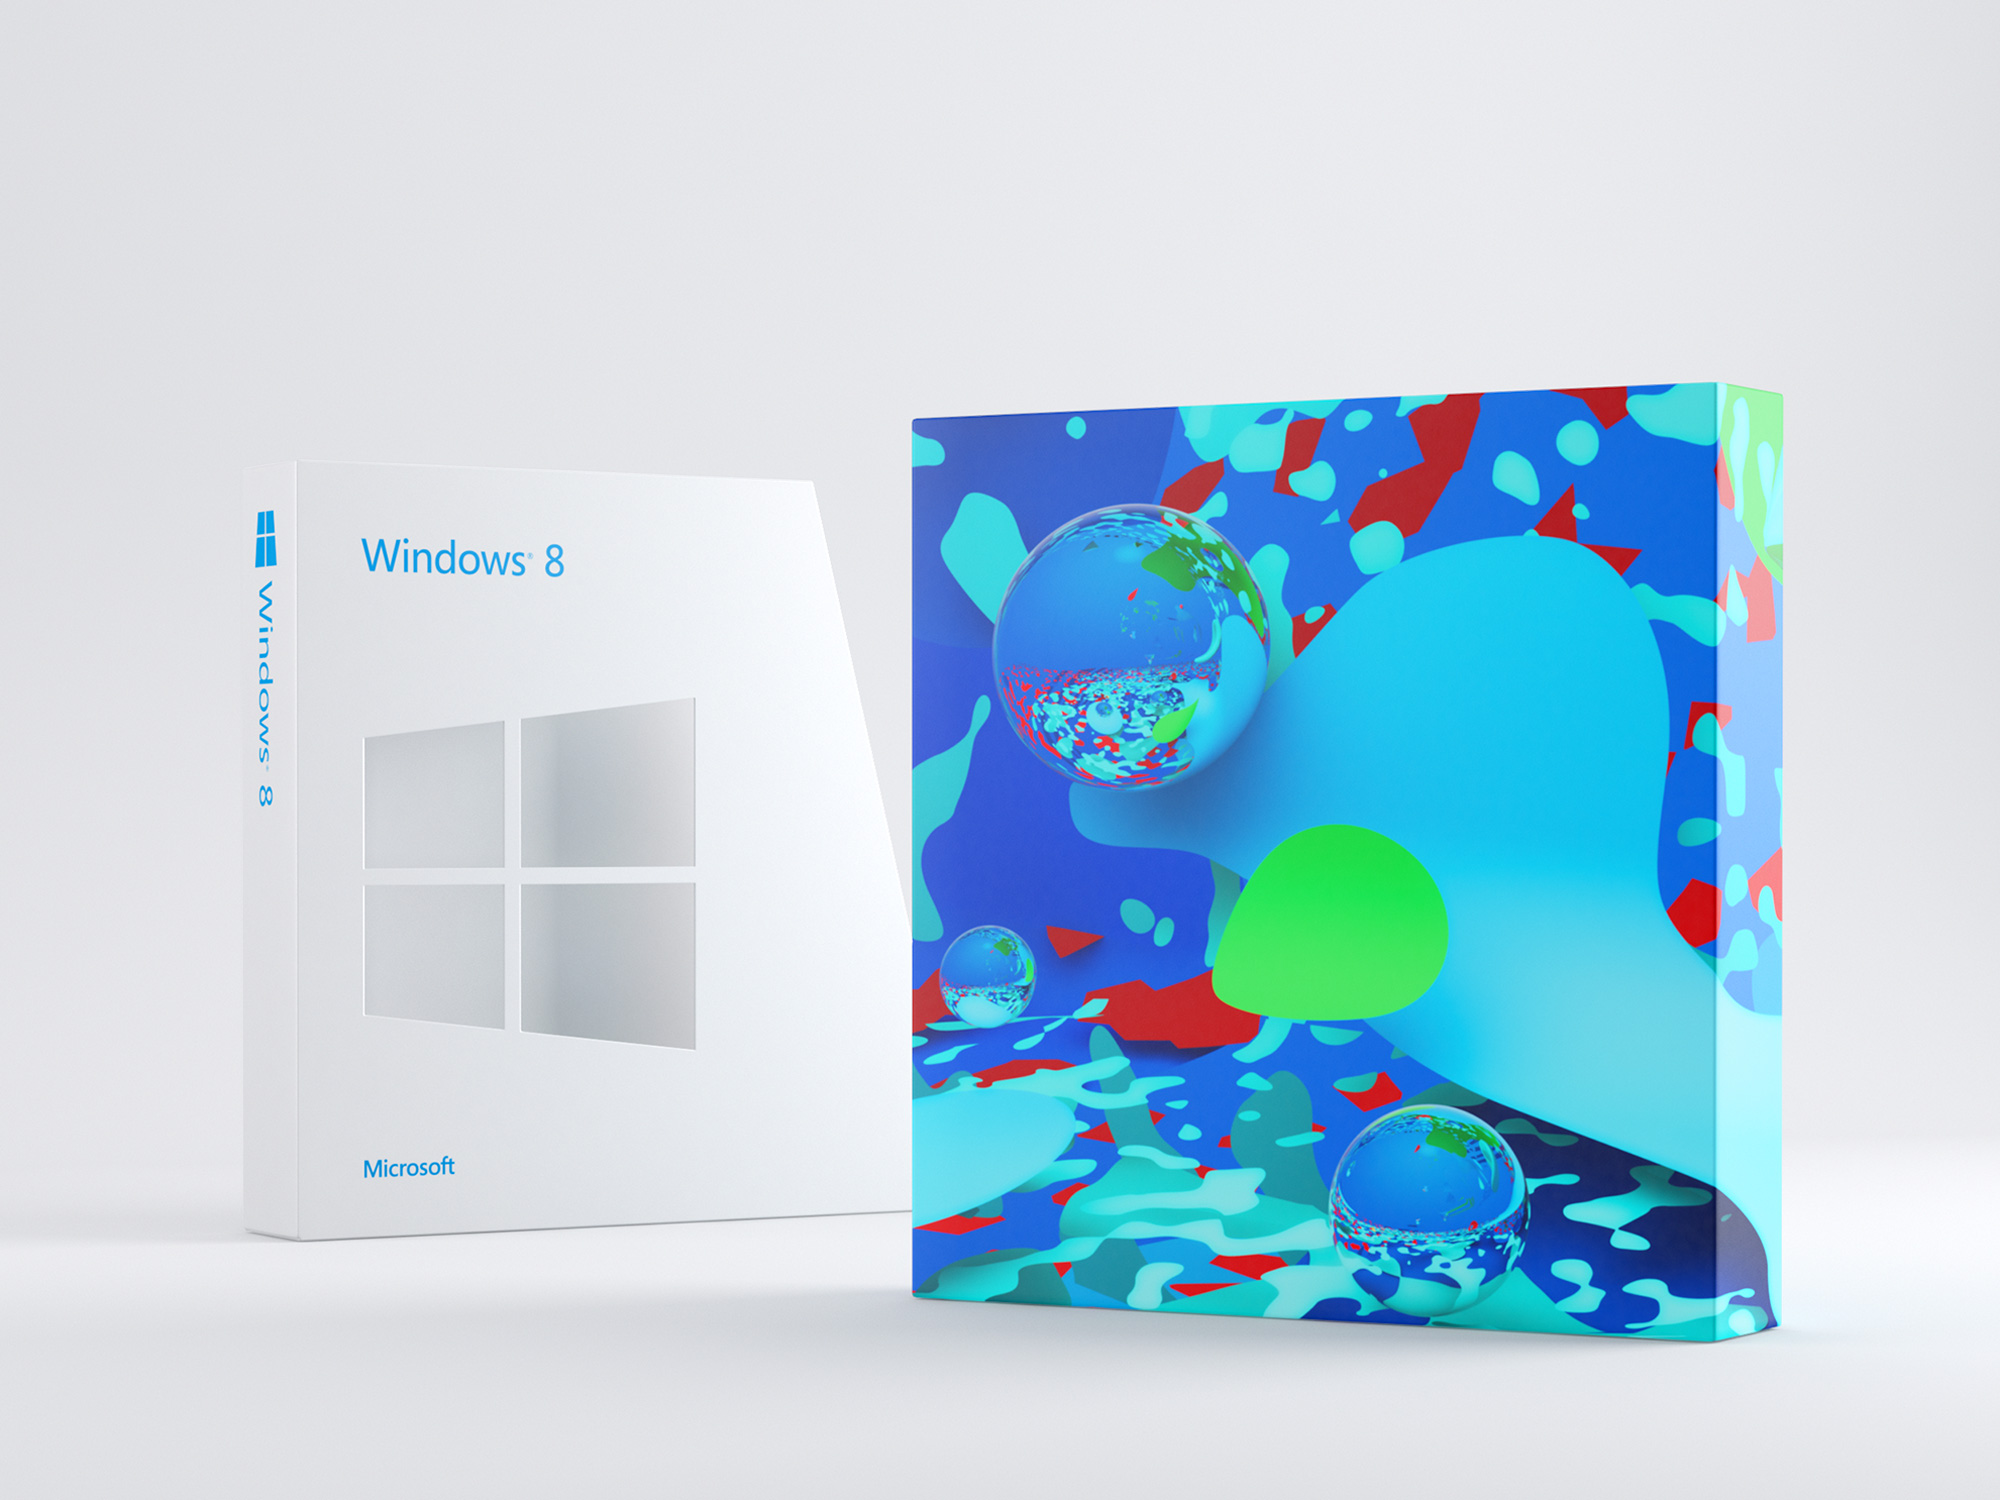 Design poster win8 - Windows 8 Packaging Design By Catk